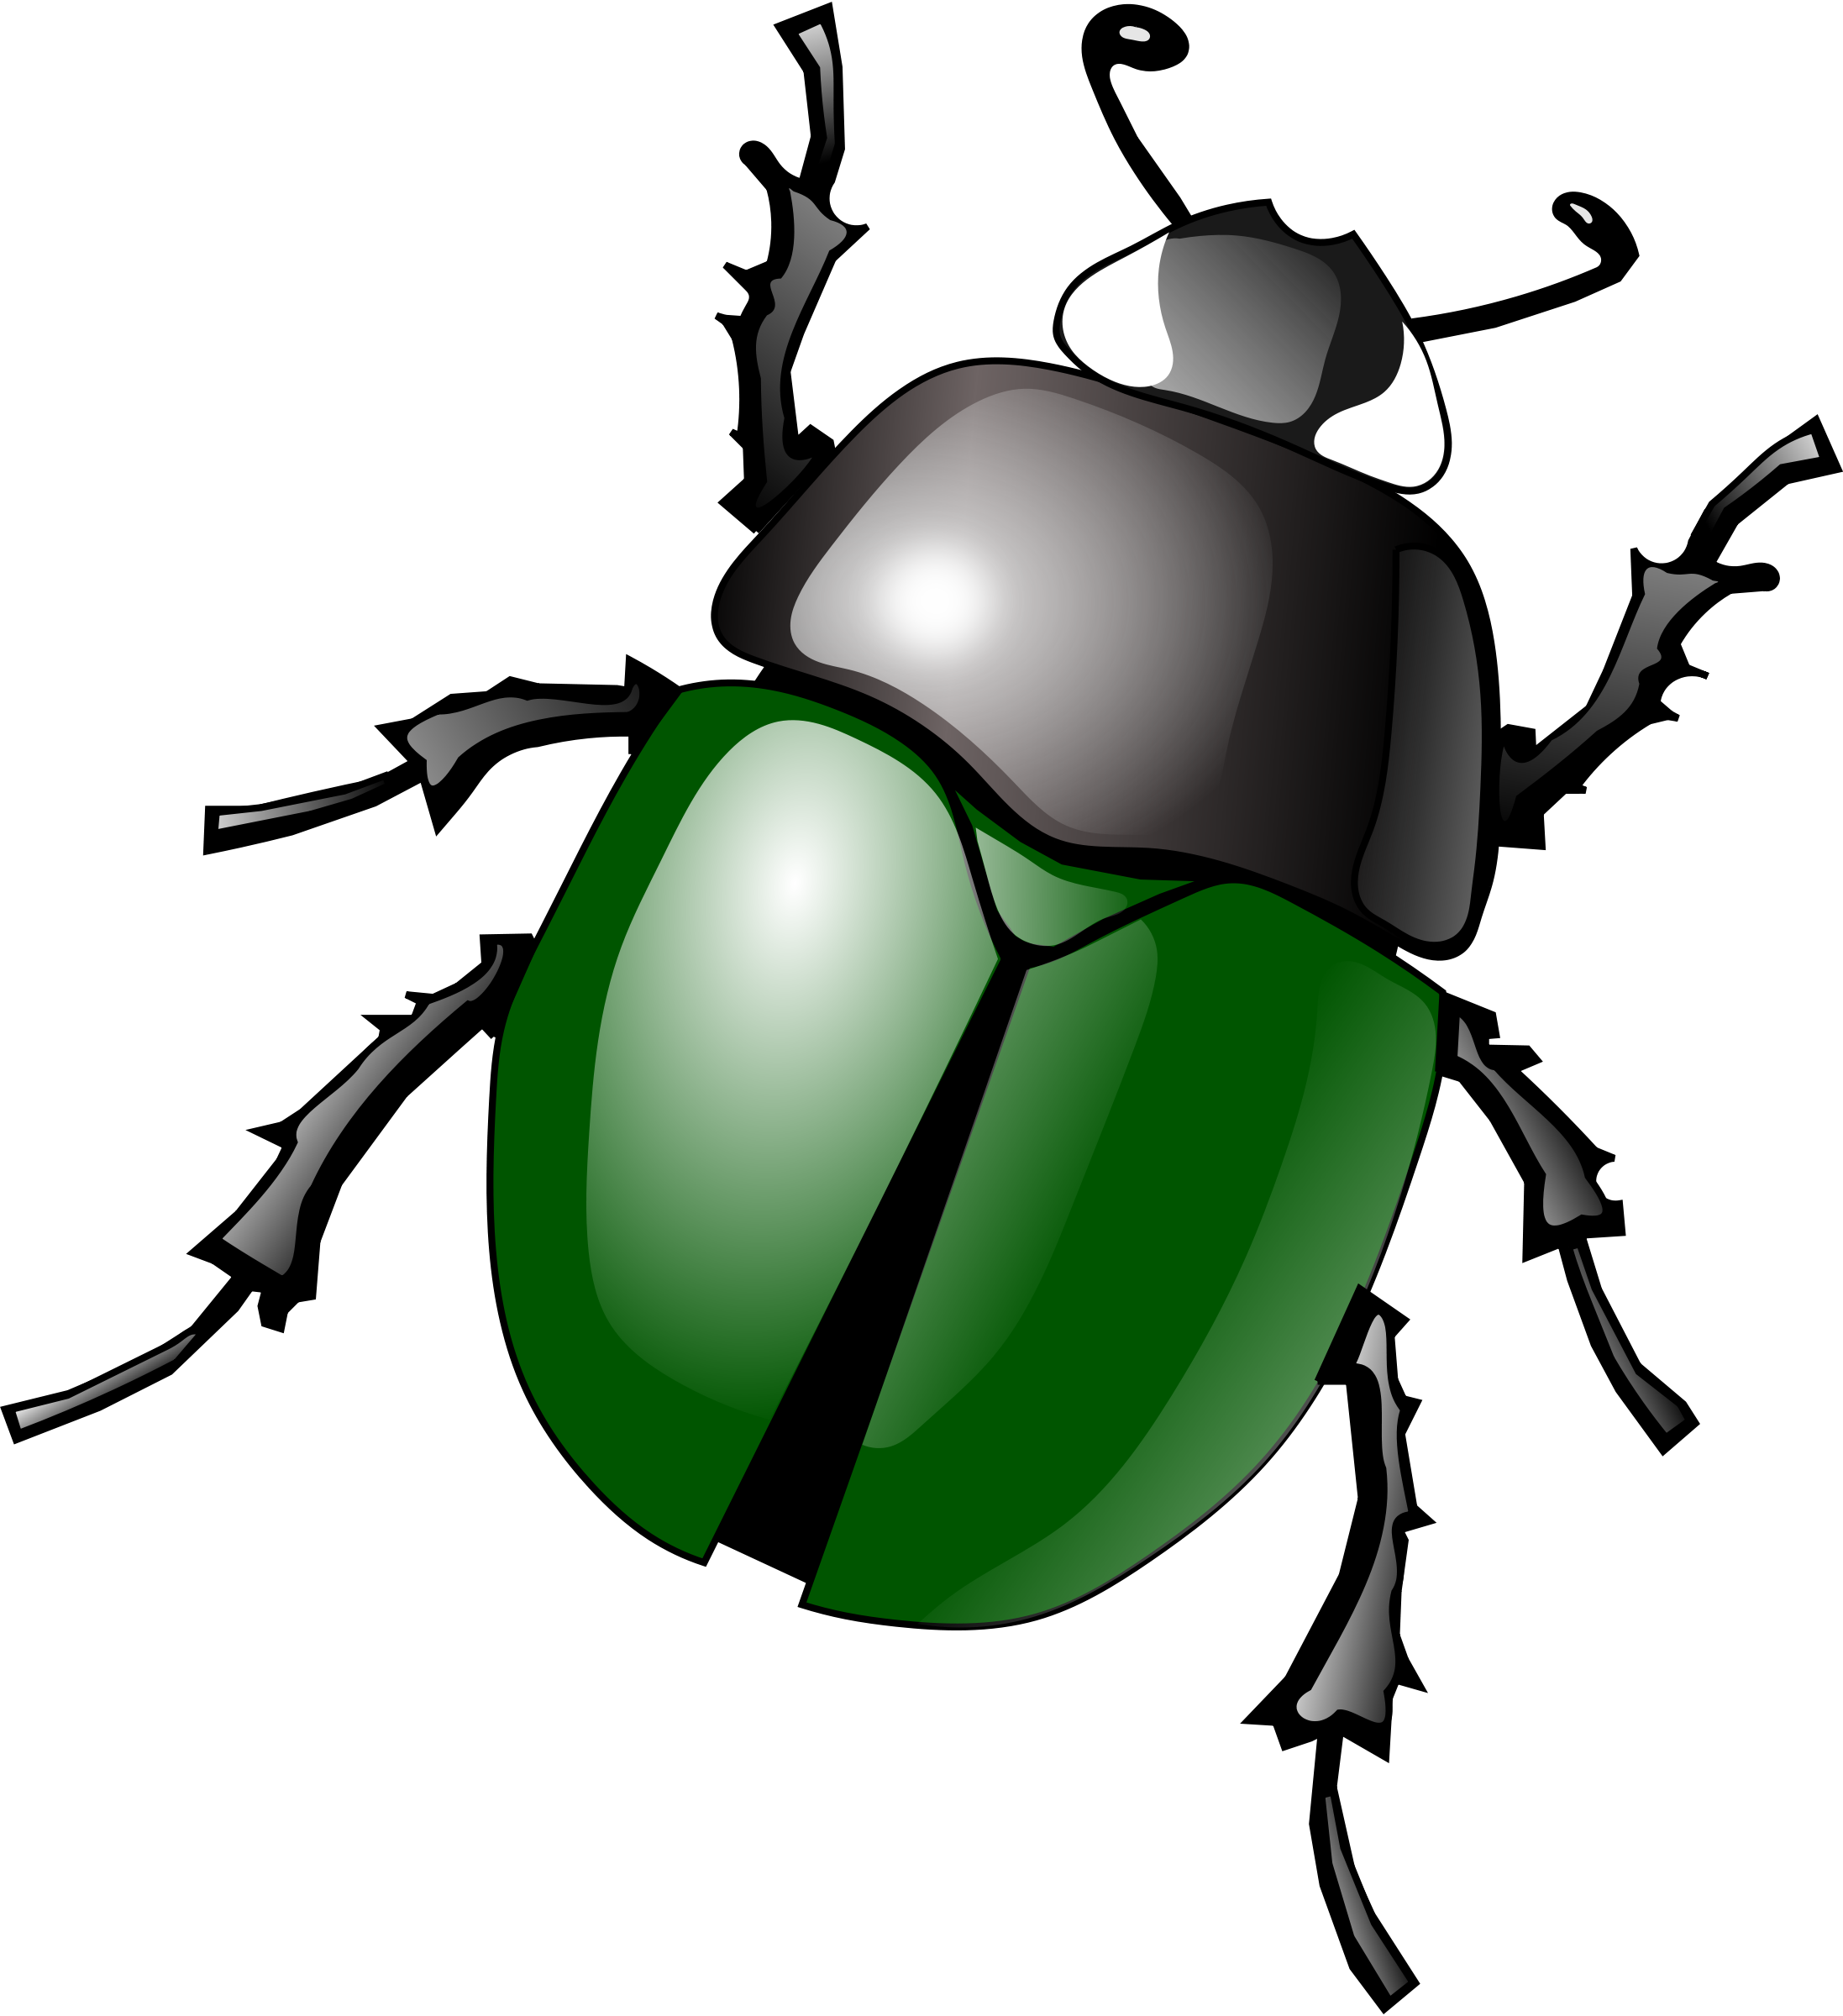 Bugs images free pictures bug clip art